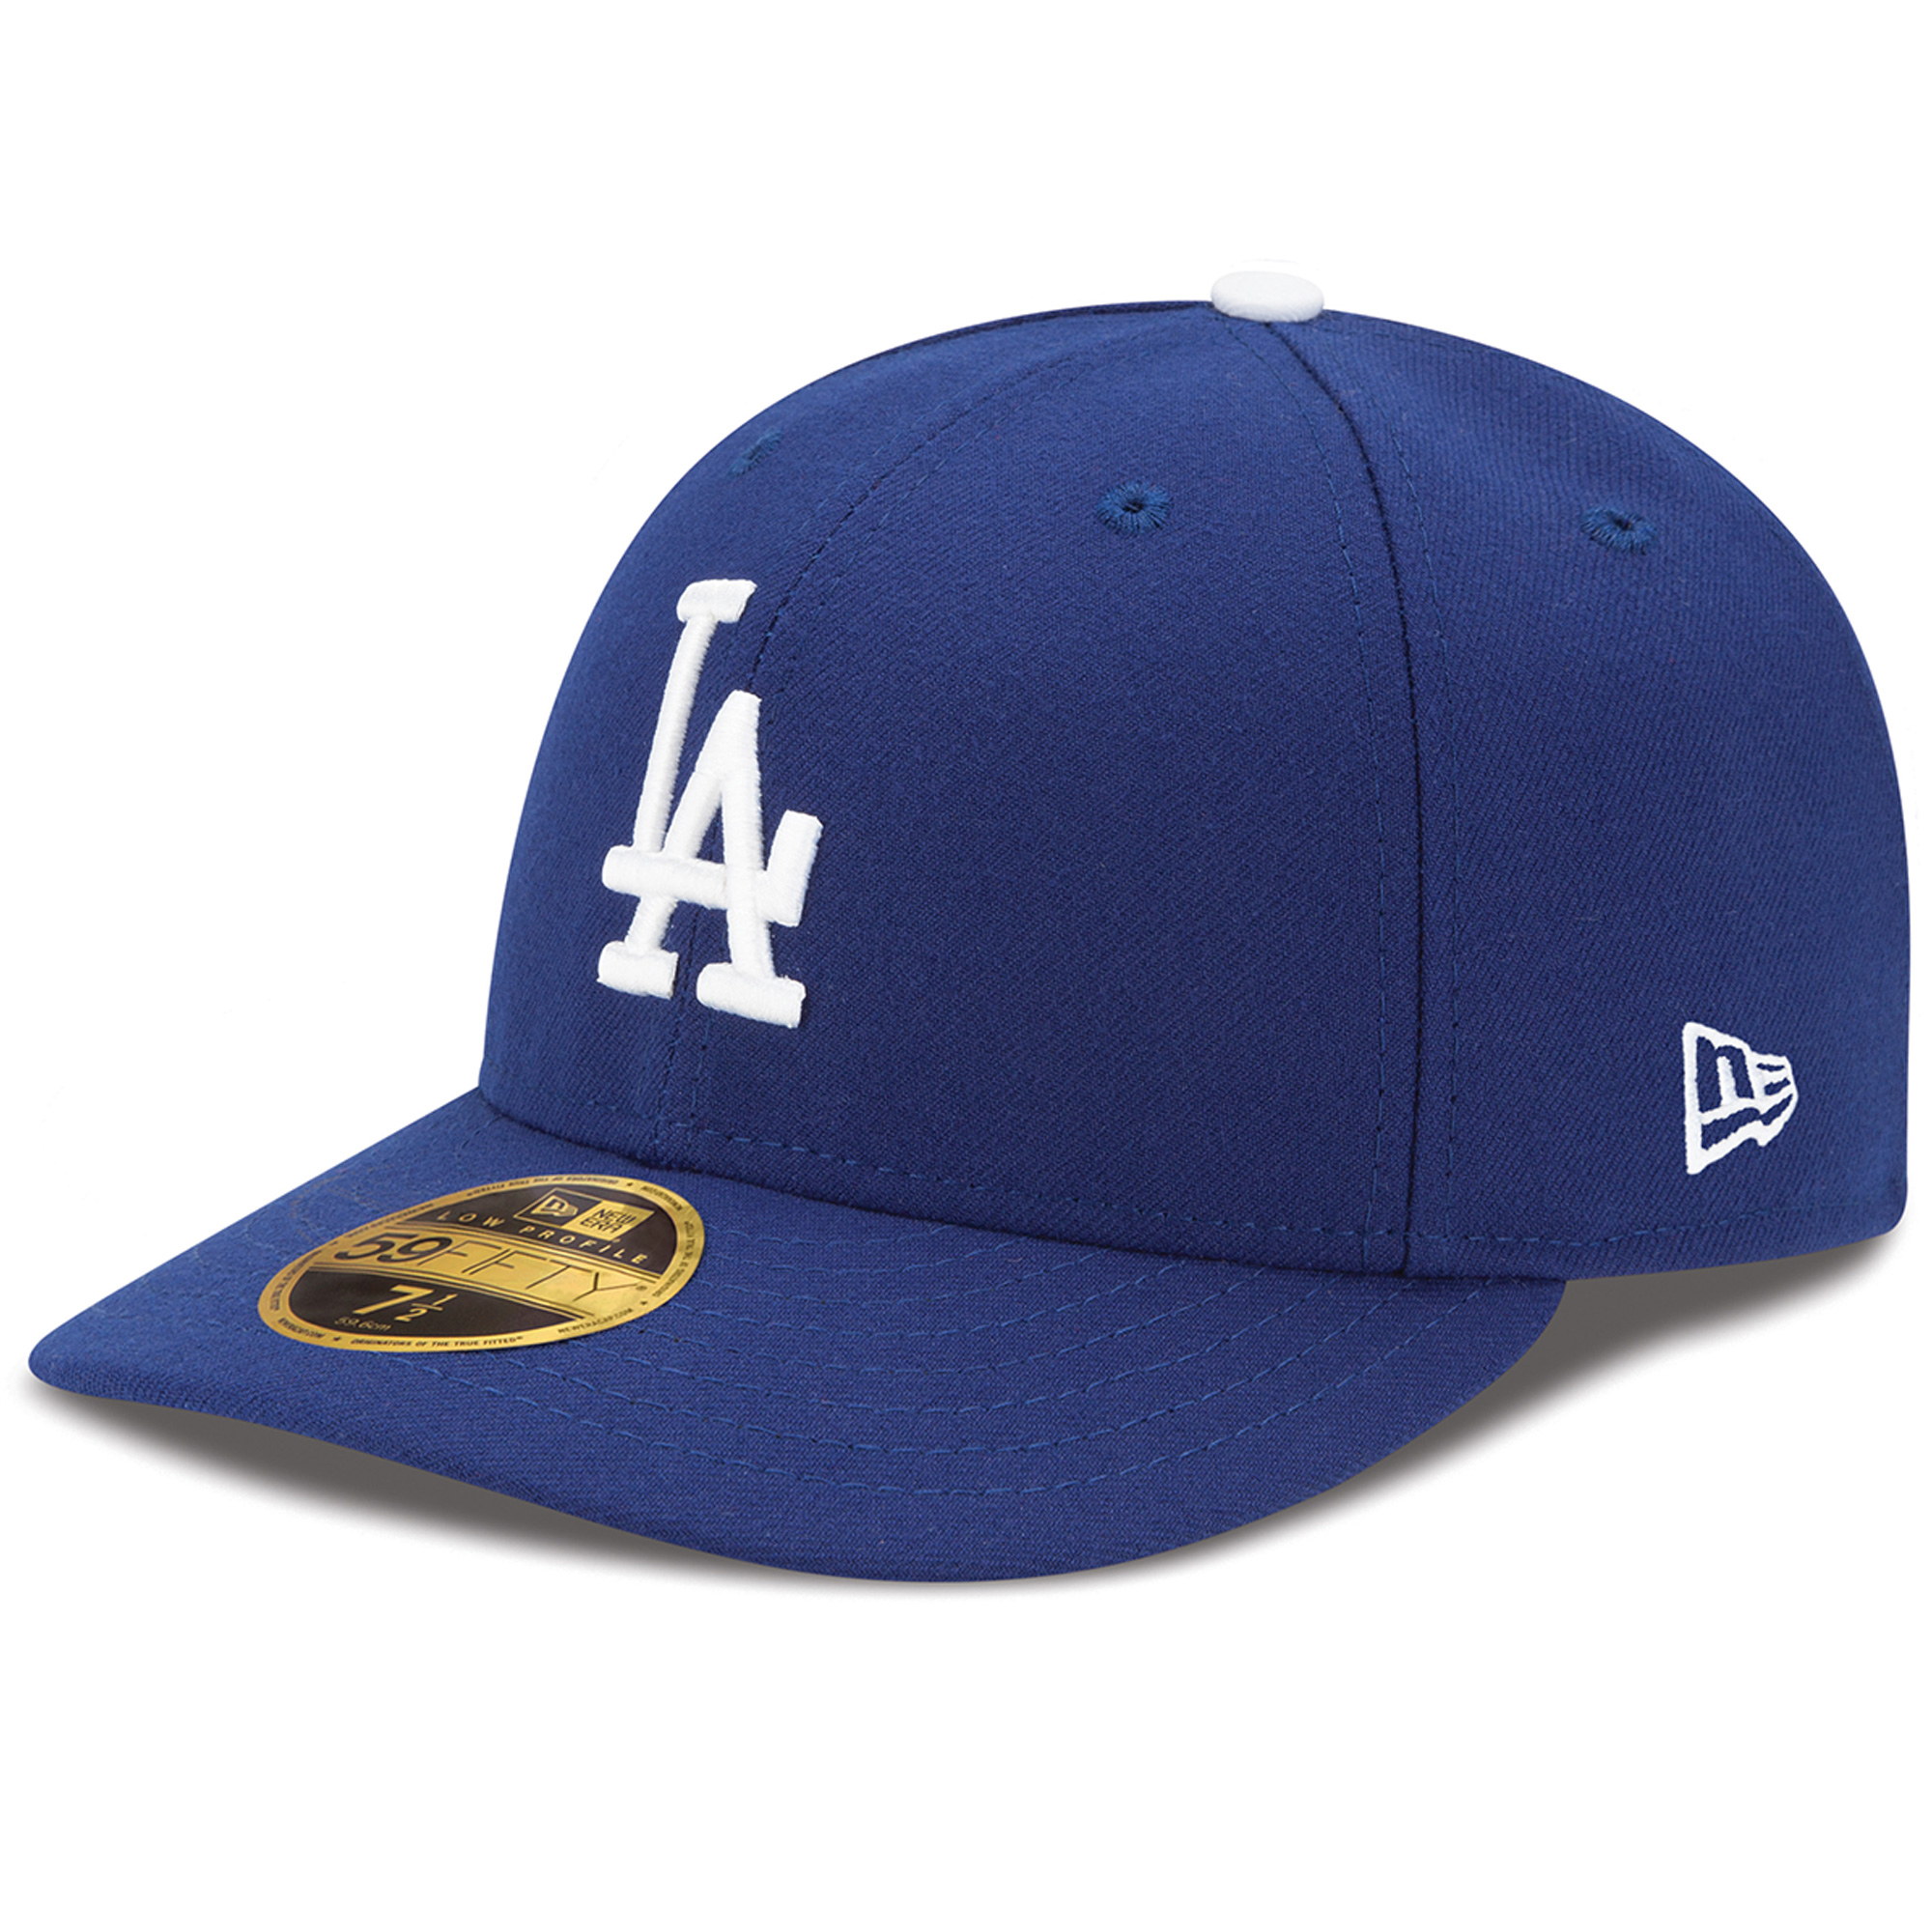 e611bf2d0c2ab5 Los Angeles Dodgers New Era 2018 Mexico Series Authentic Collection Low  Profile 59FIFTY Fitted Hat - Royal - Walmart.com